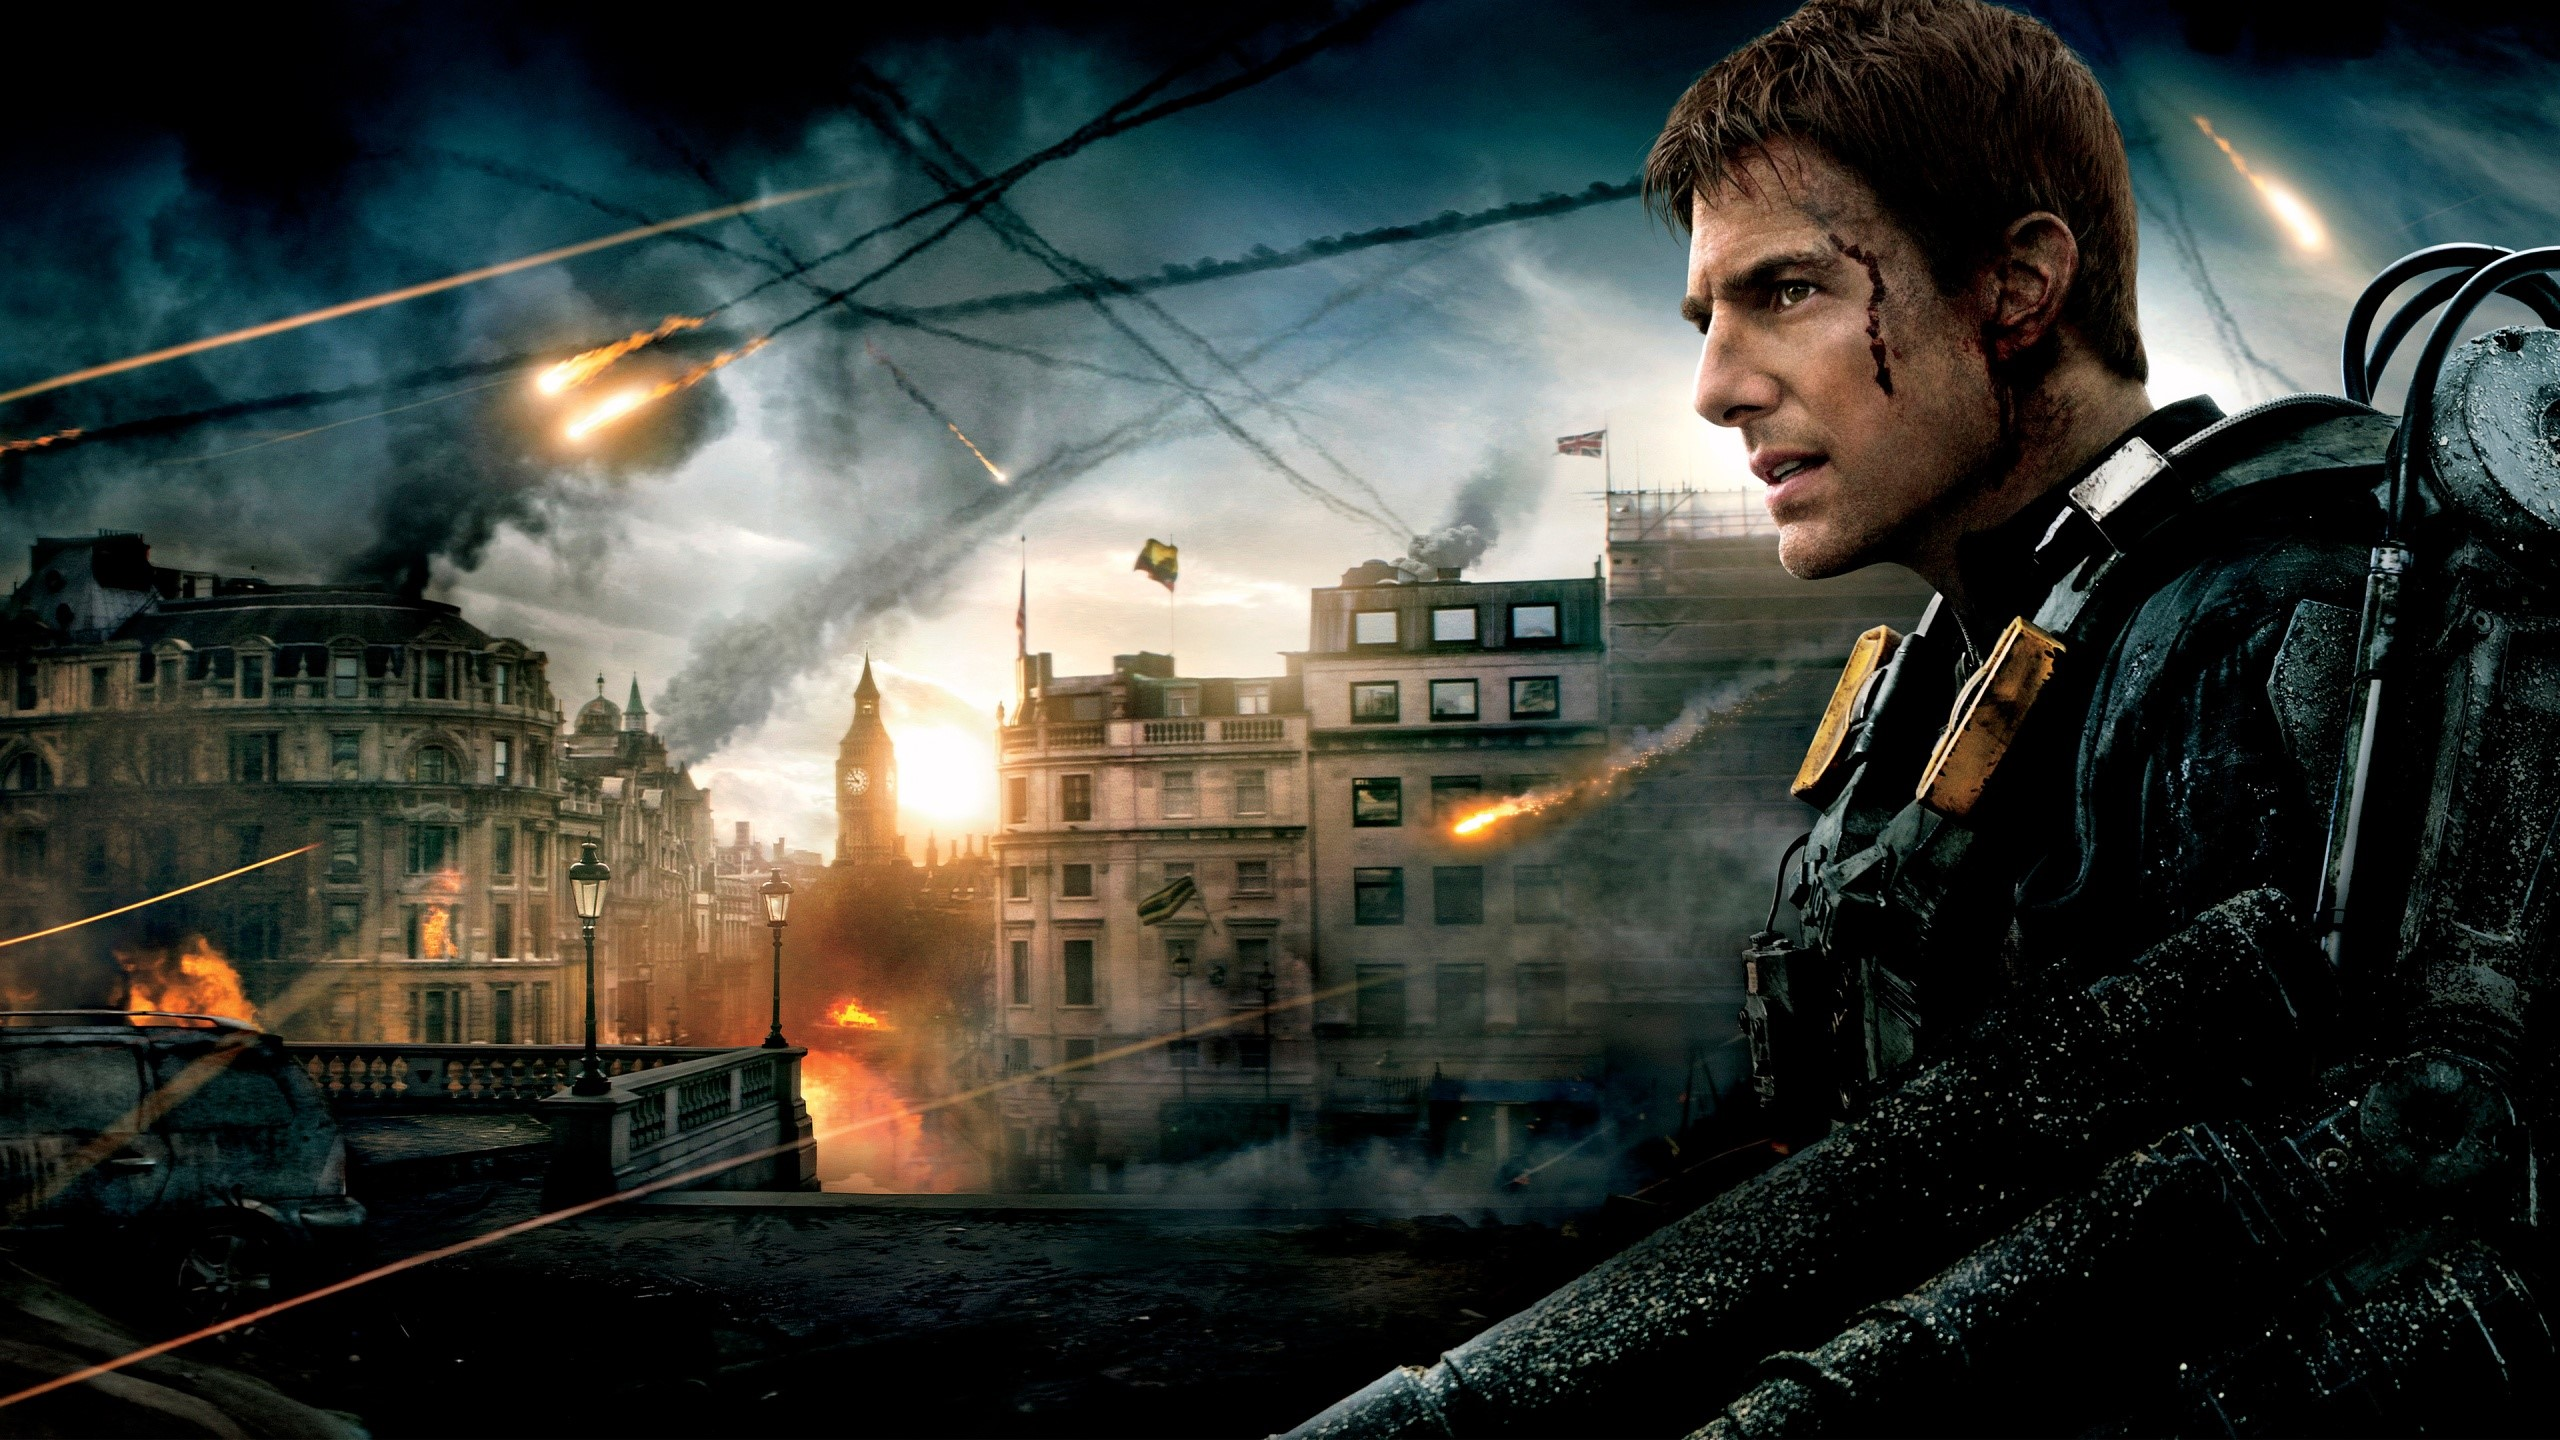 Wallpaper Tom Cruise in the movie On the Edge of Tomorrow